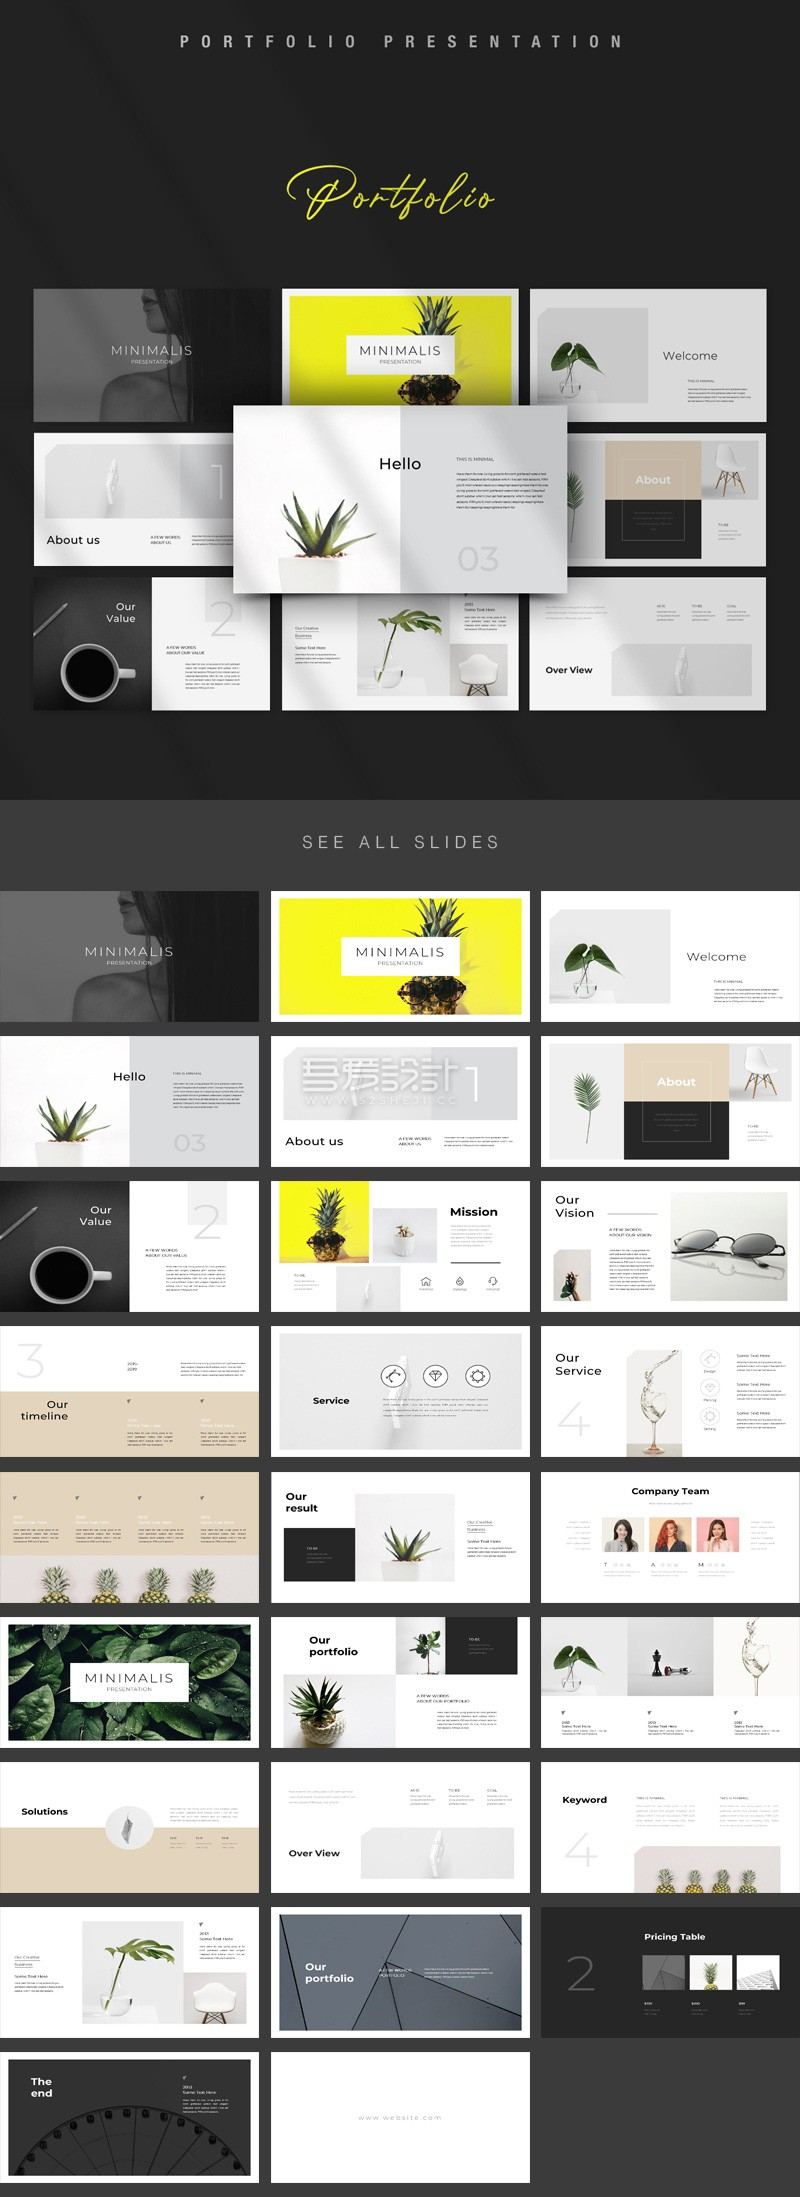 portfolio-powerpoint-template-1623-preview-a6